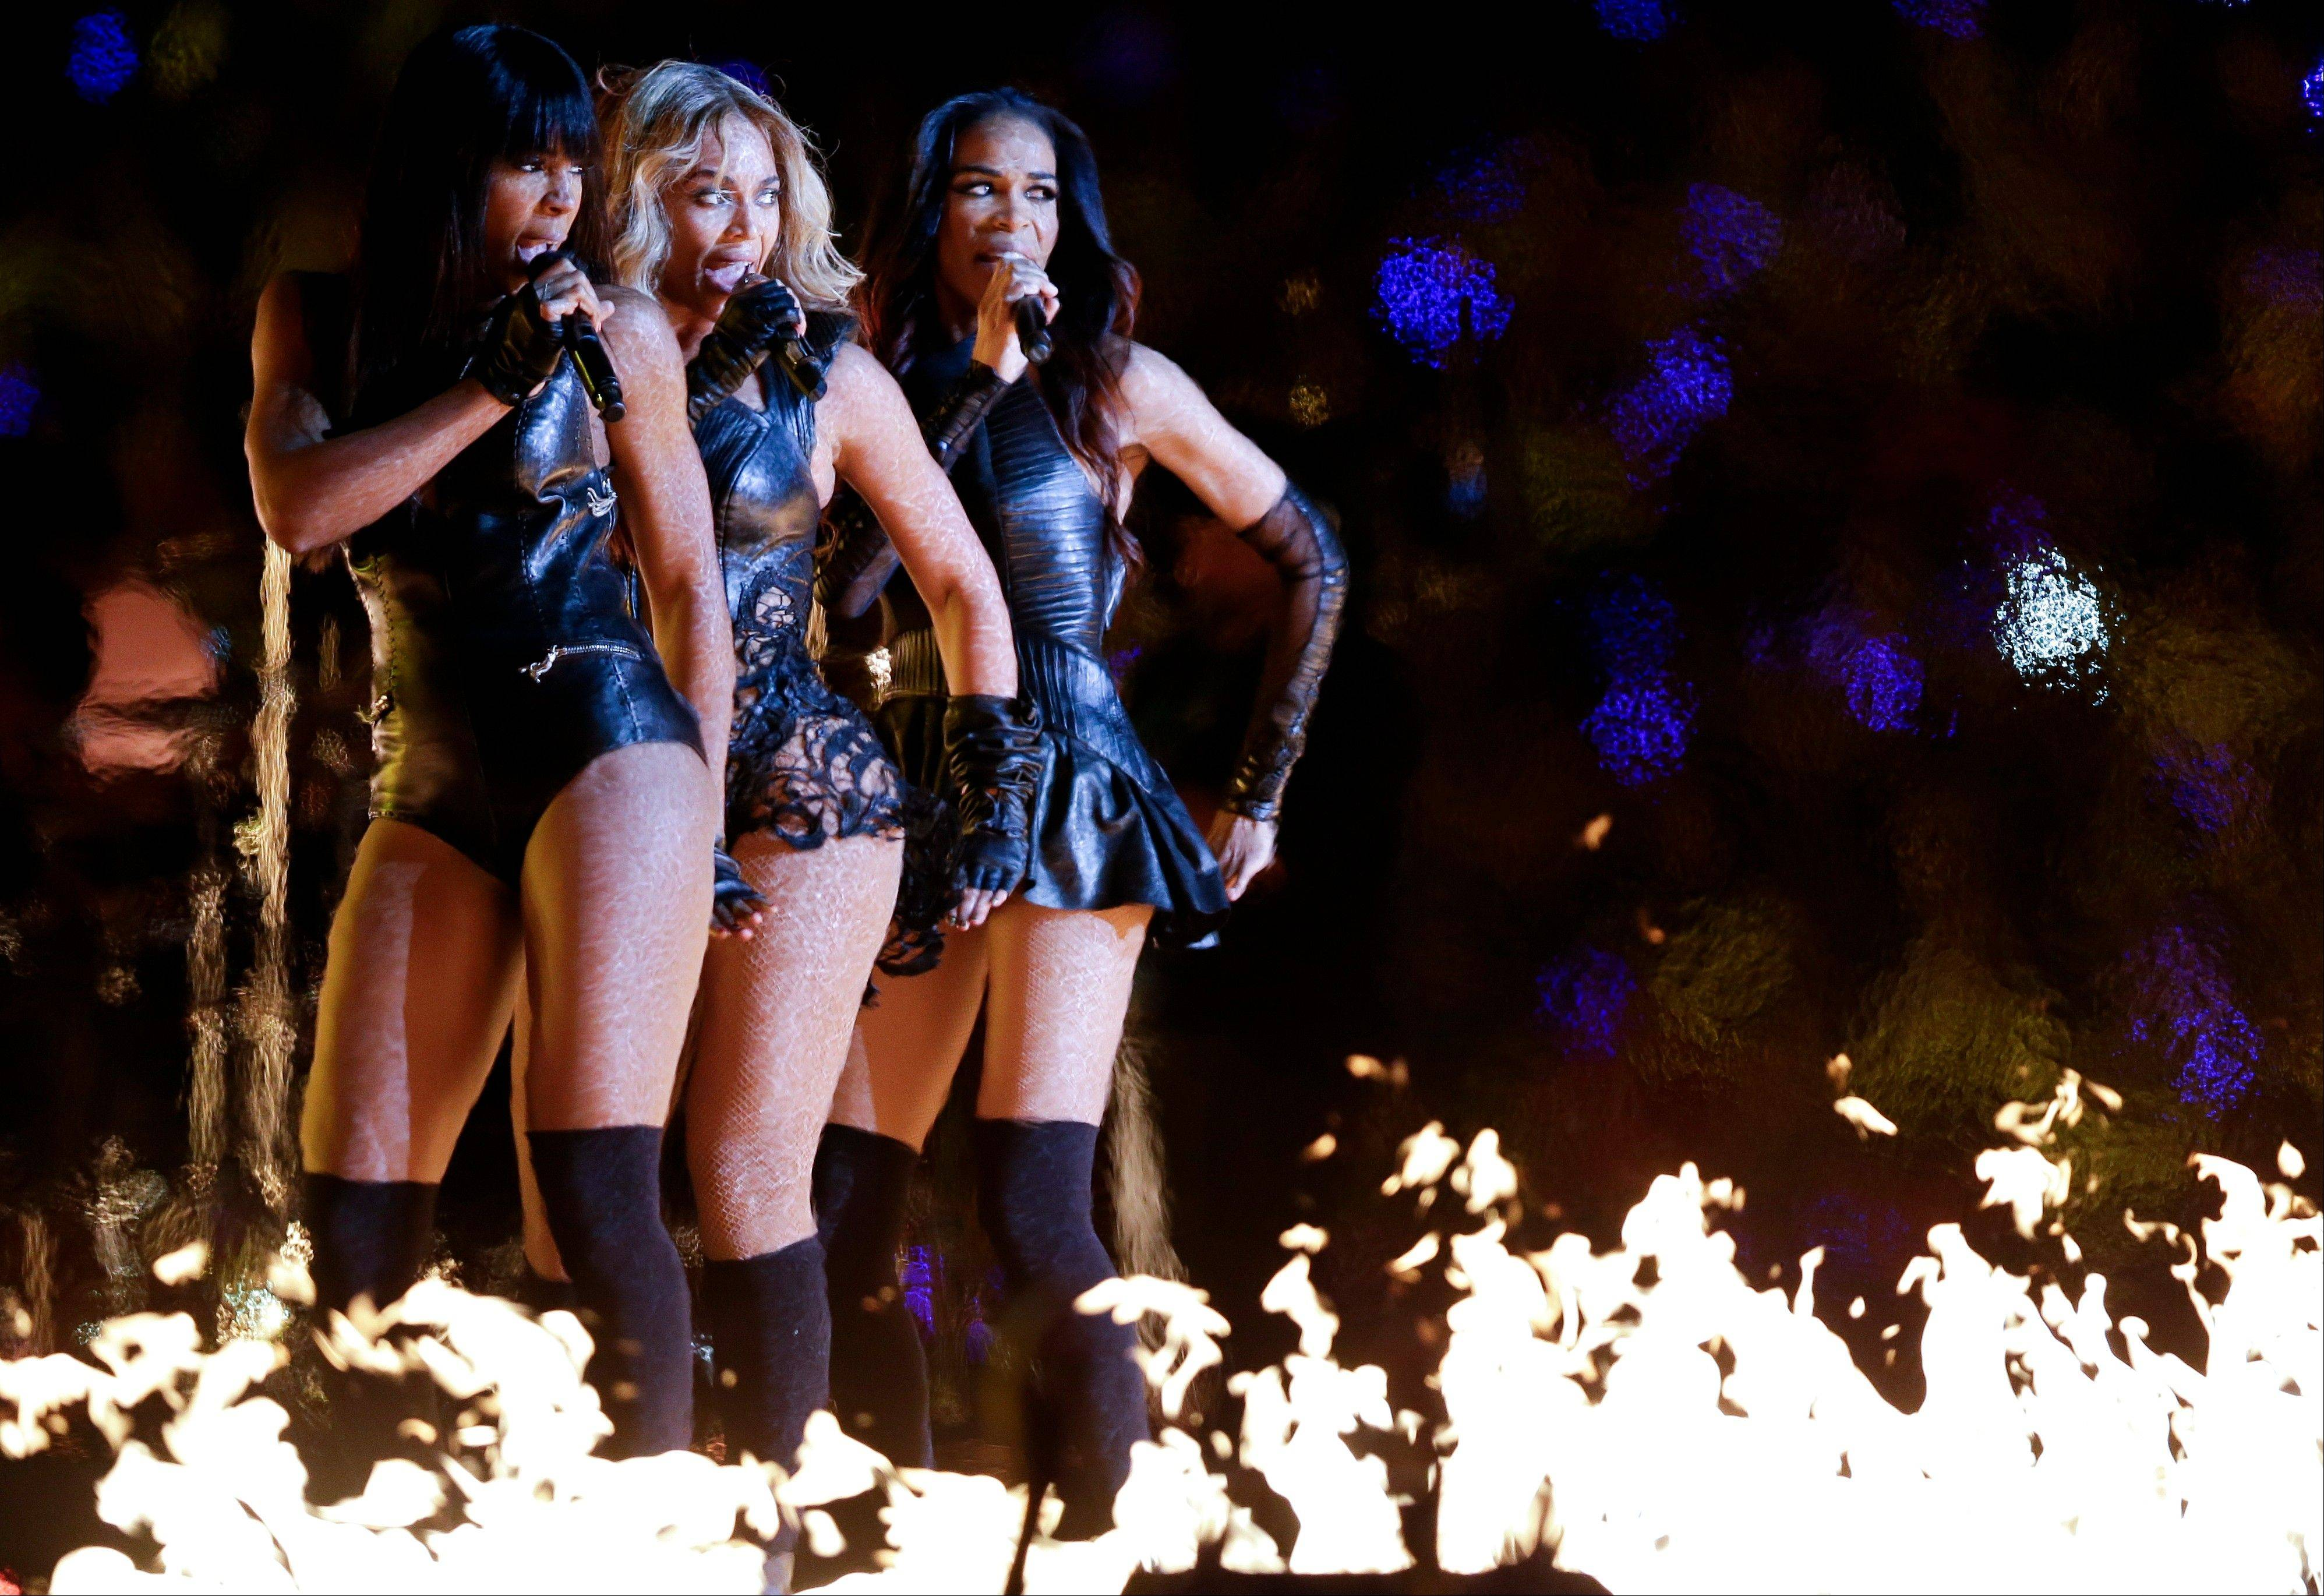 Beyonc�, center, Kelly Rowland, left, and Michelle Williams, of Destiny's Child, perform during the halftime show of the NFL Super Bowl XLVII football game.